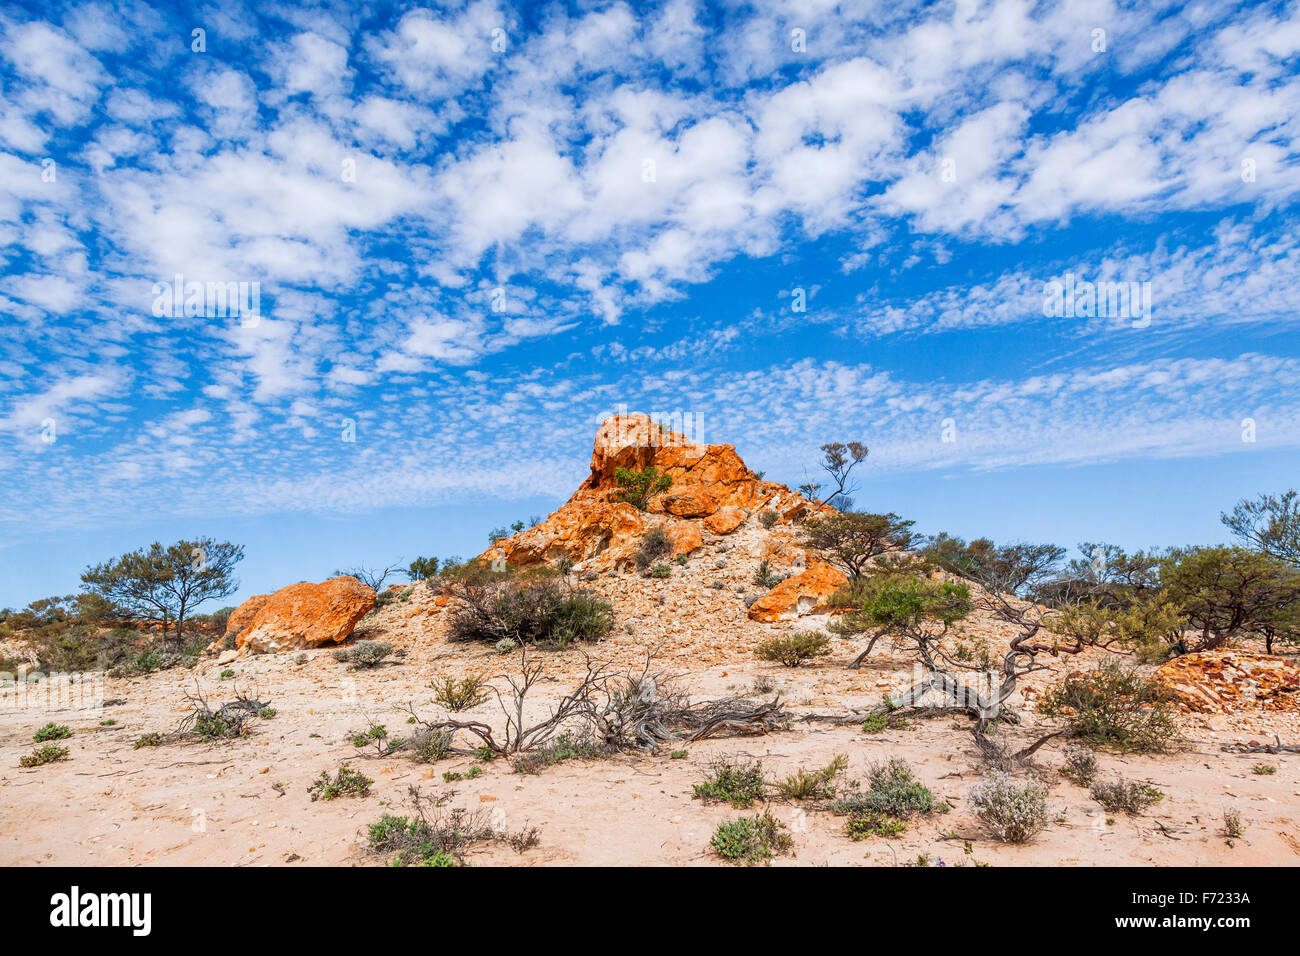 colourful rock outcrop at the Granites Reserve near Mount Magnet, Murchison District, Mid West Western Australia - Stock Image